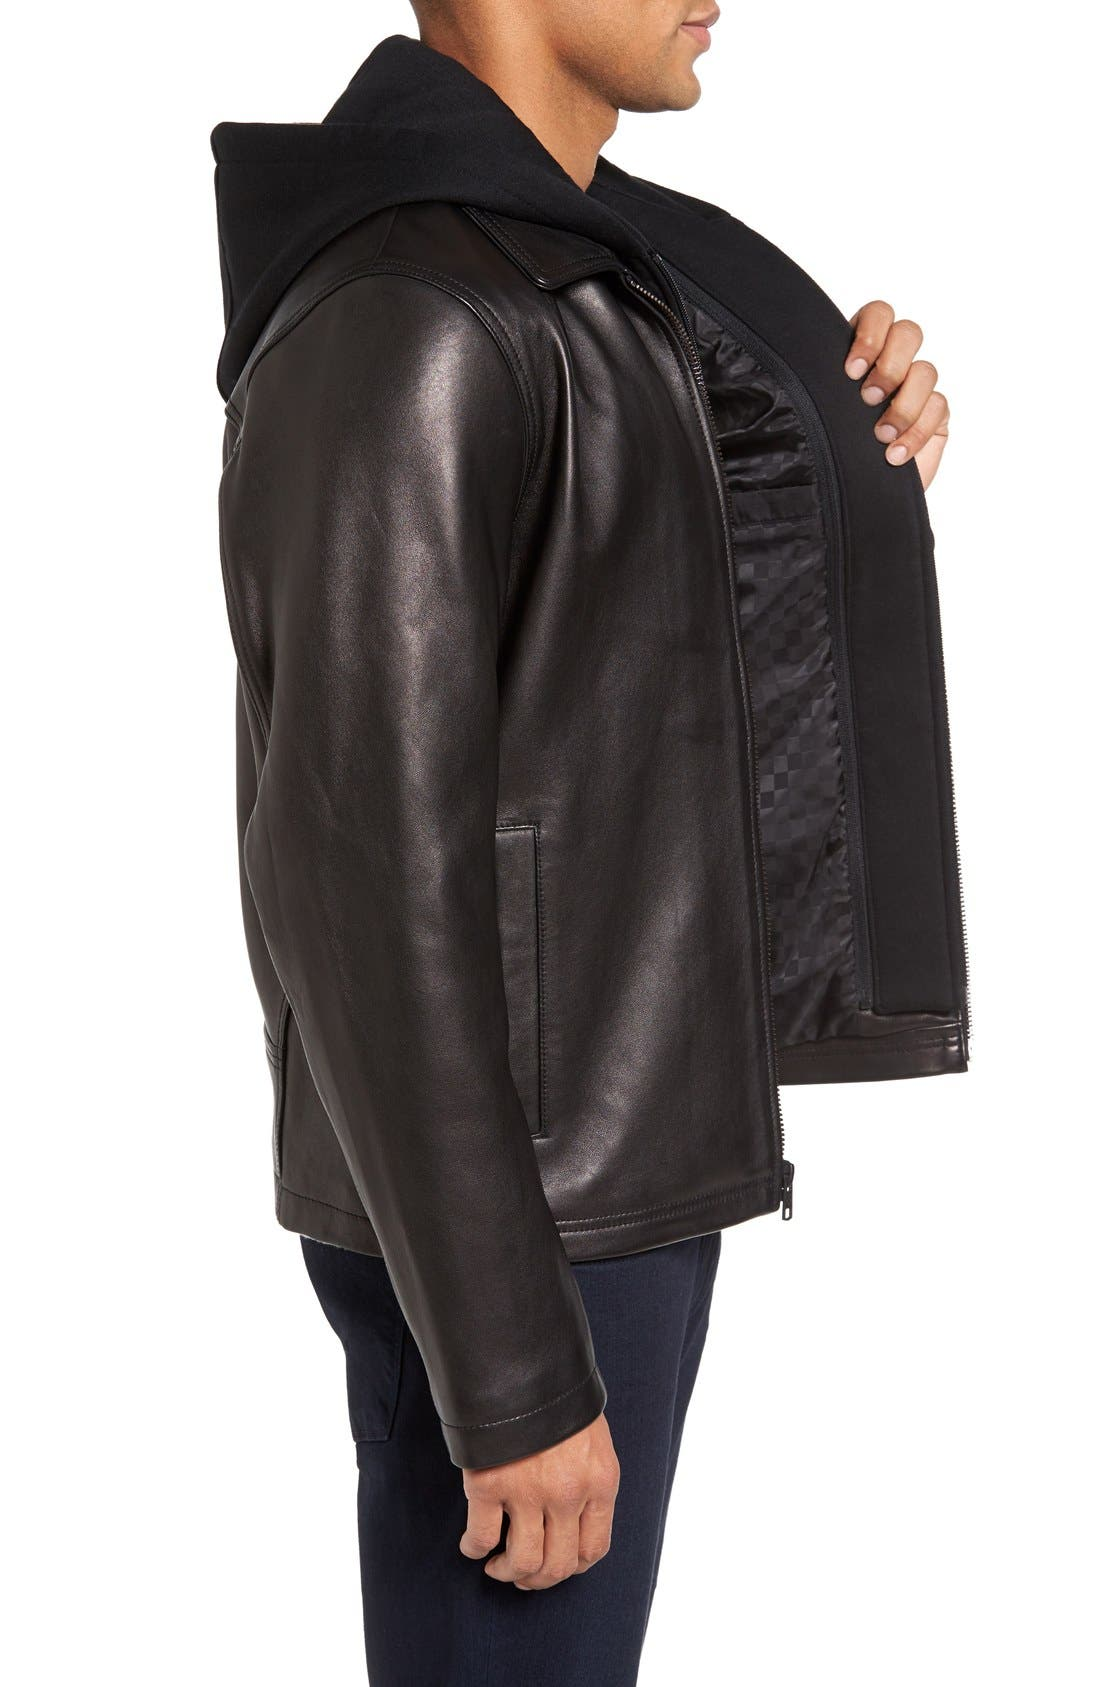 Leather Jacket with Removable Hooded Bib,                             Alternate thumbnail 3, color,                             Black